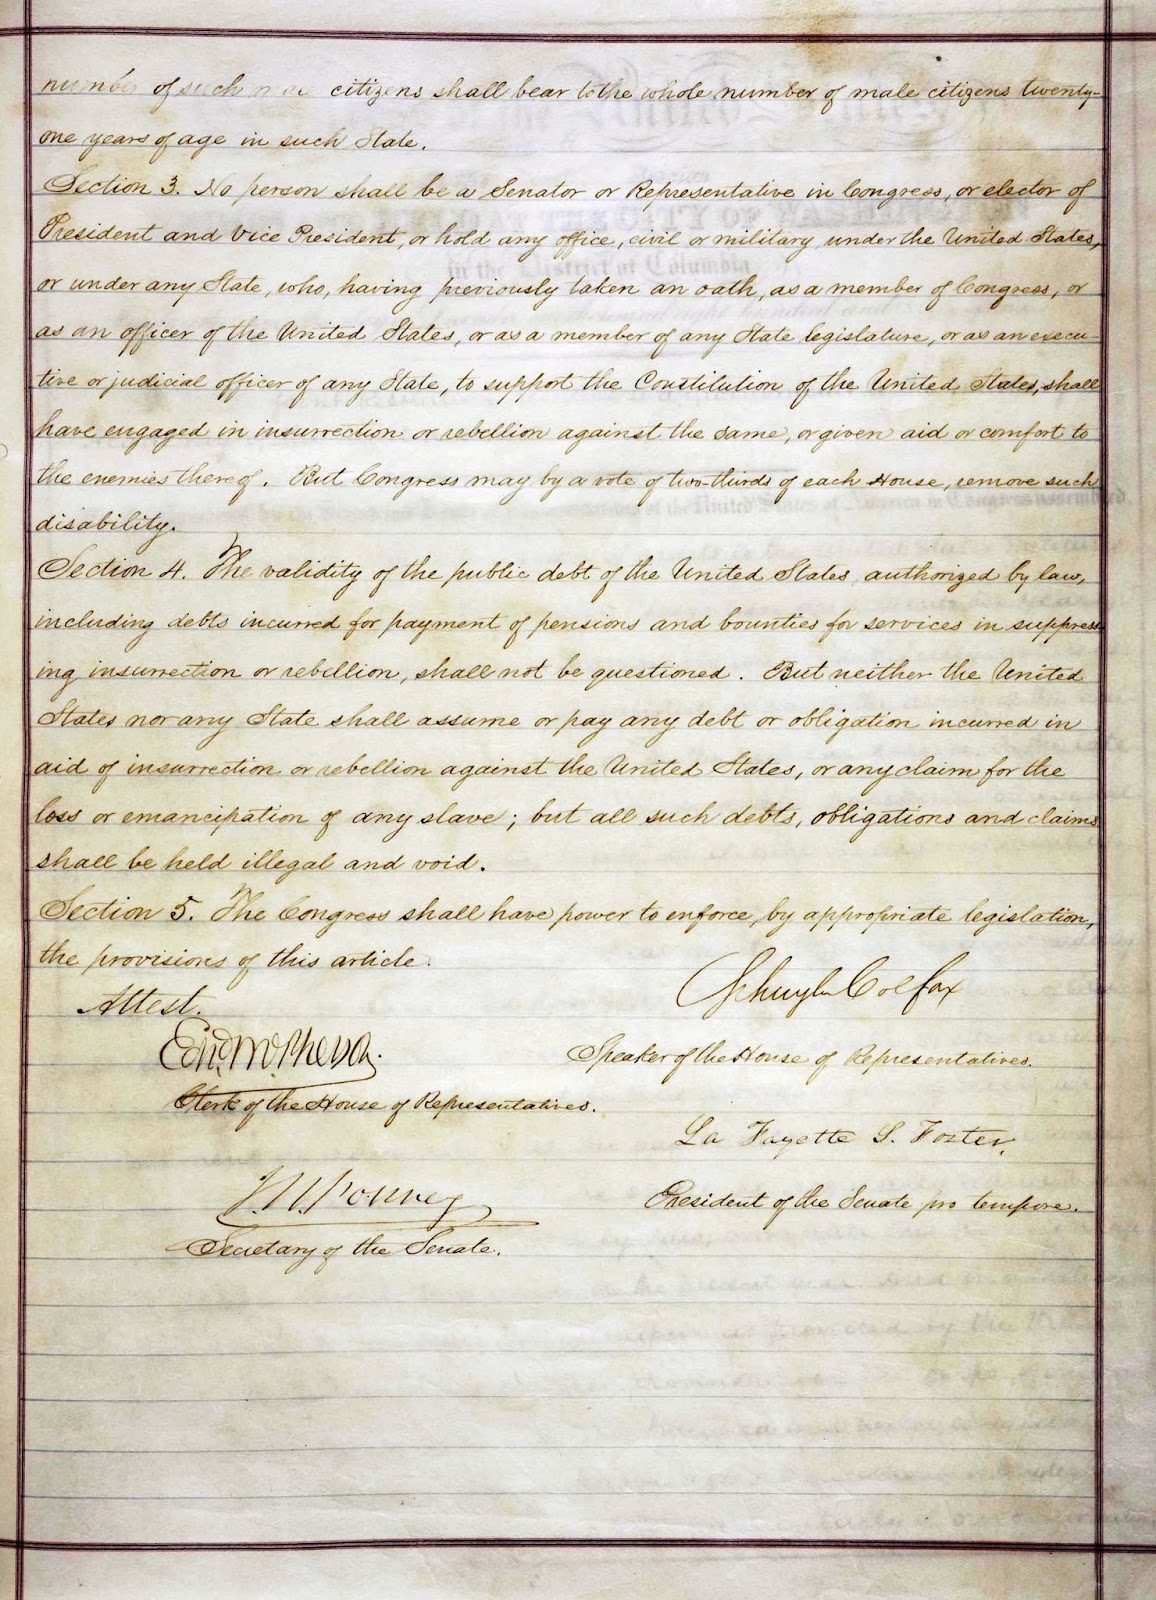 An analysis of the fourteenth amendment of the united states constitution